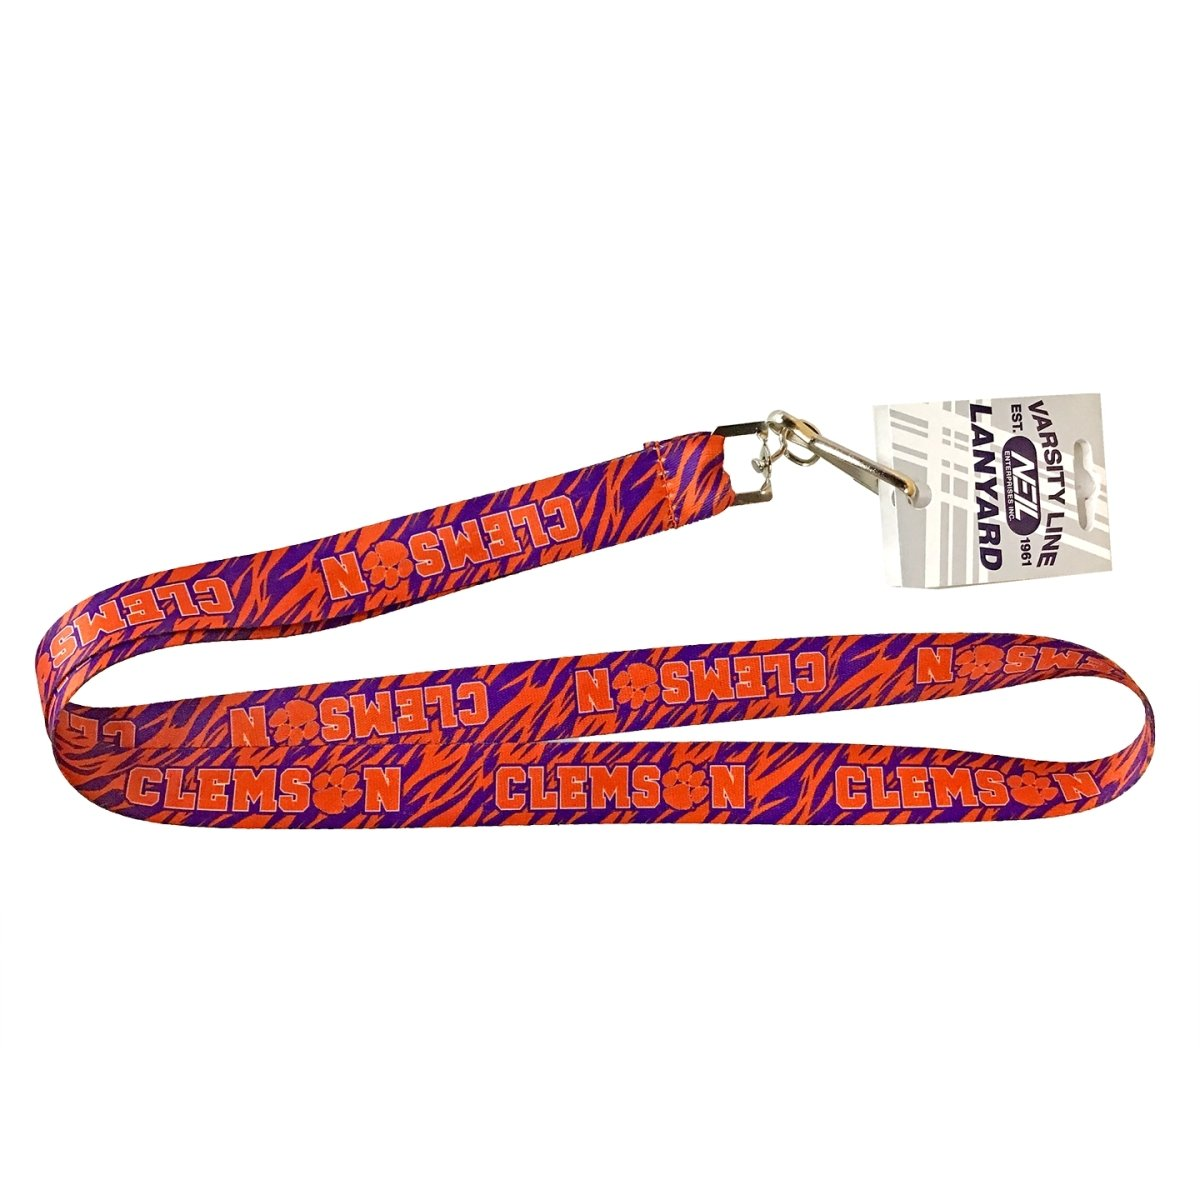 Satin Lanyard 3/4'' Tiger Stripes With Clemson Orange Imprint - Mr. Knickerbocker